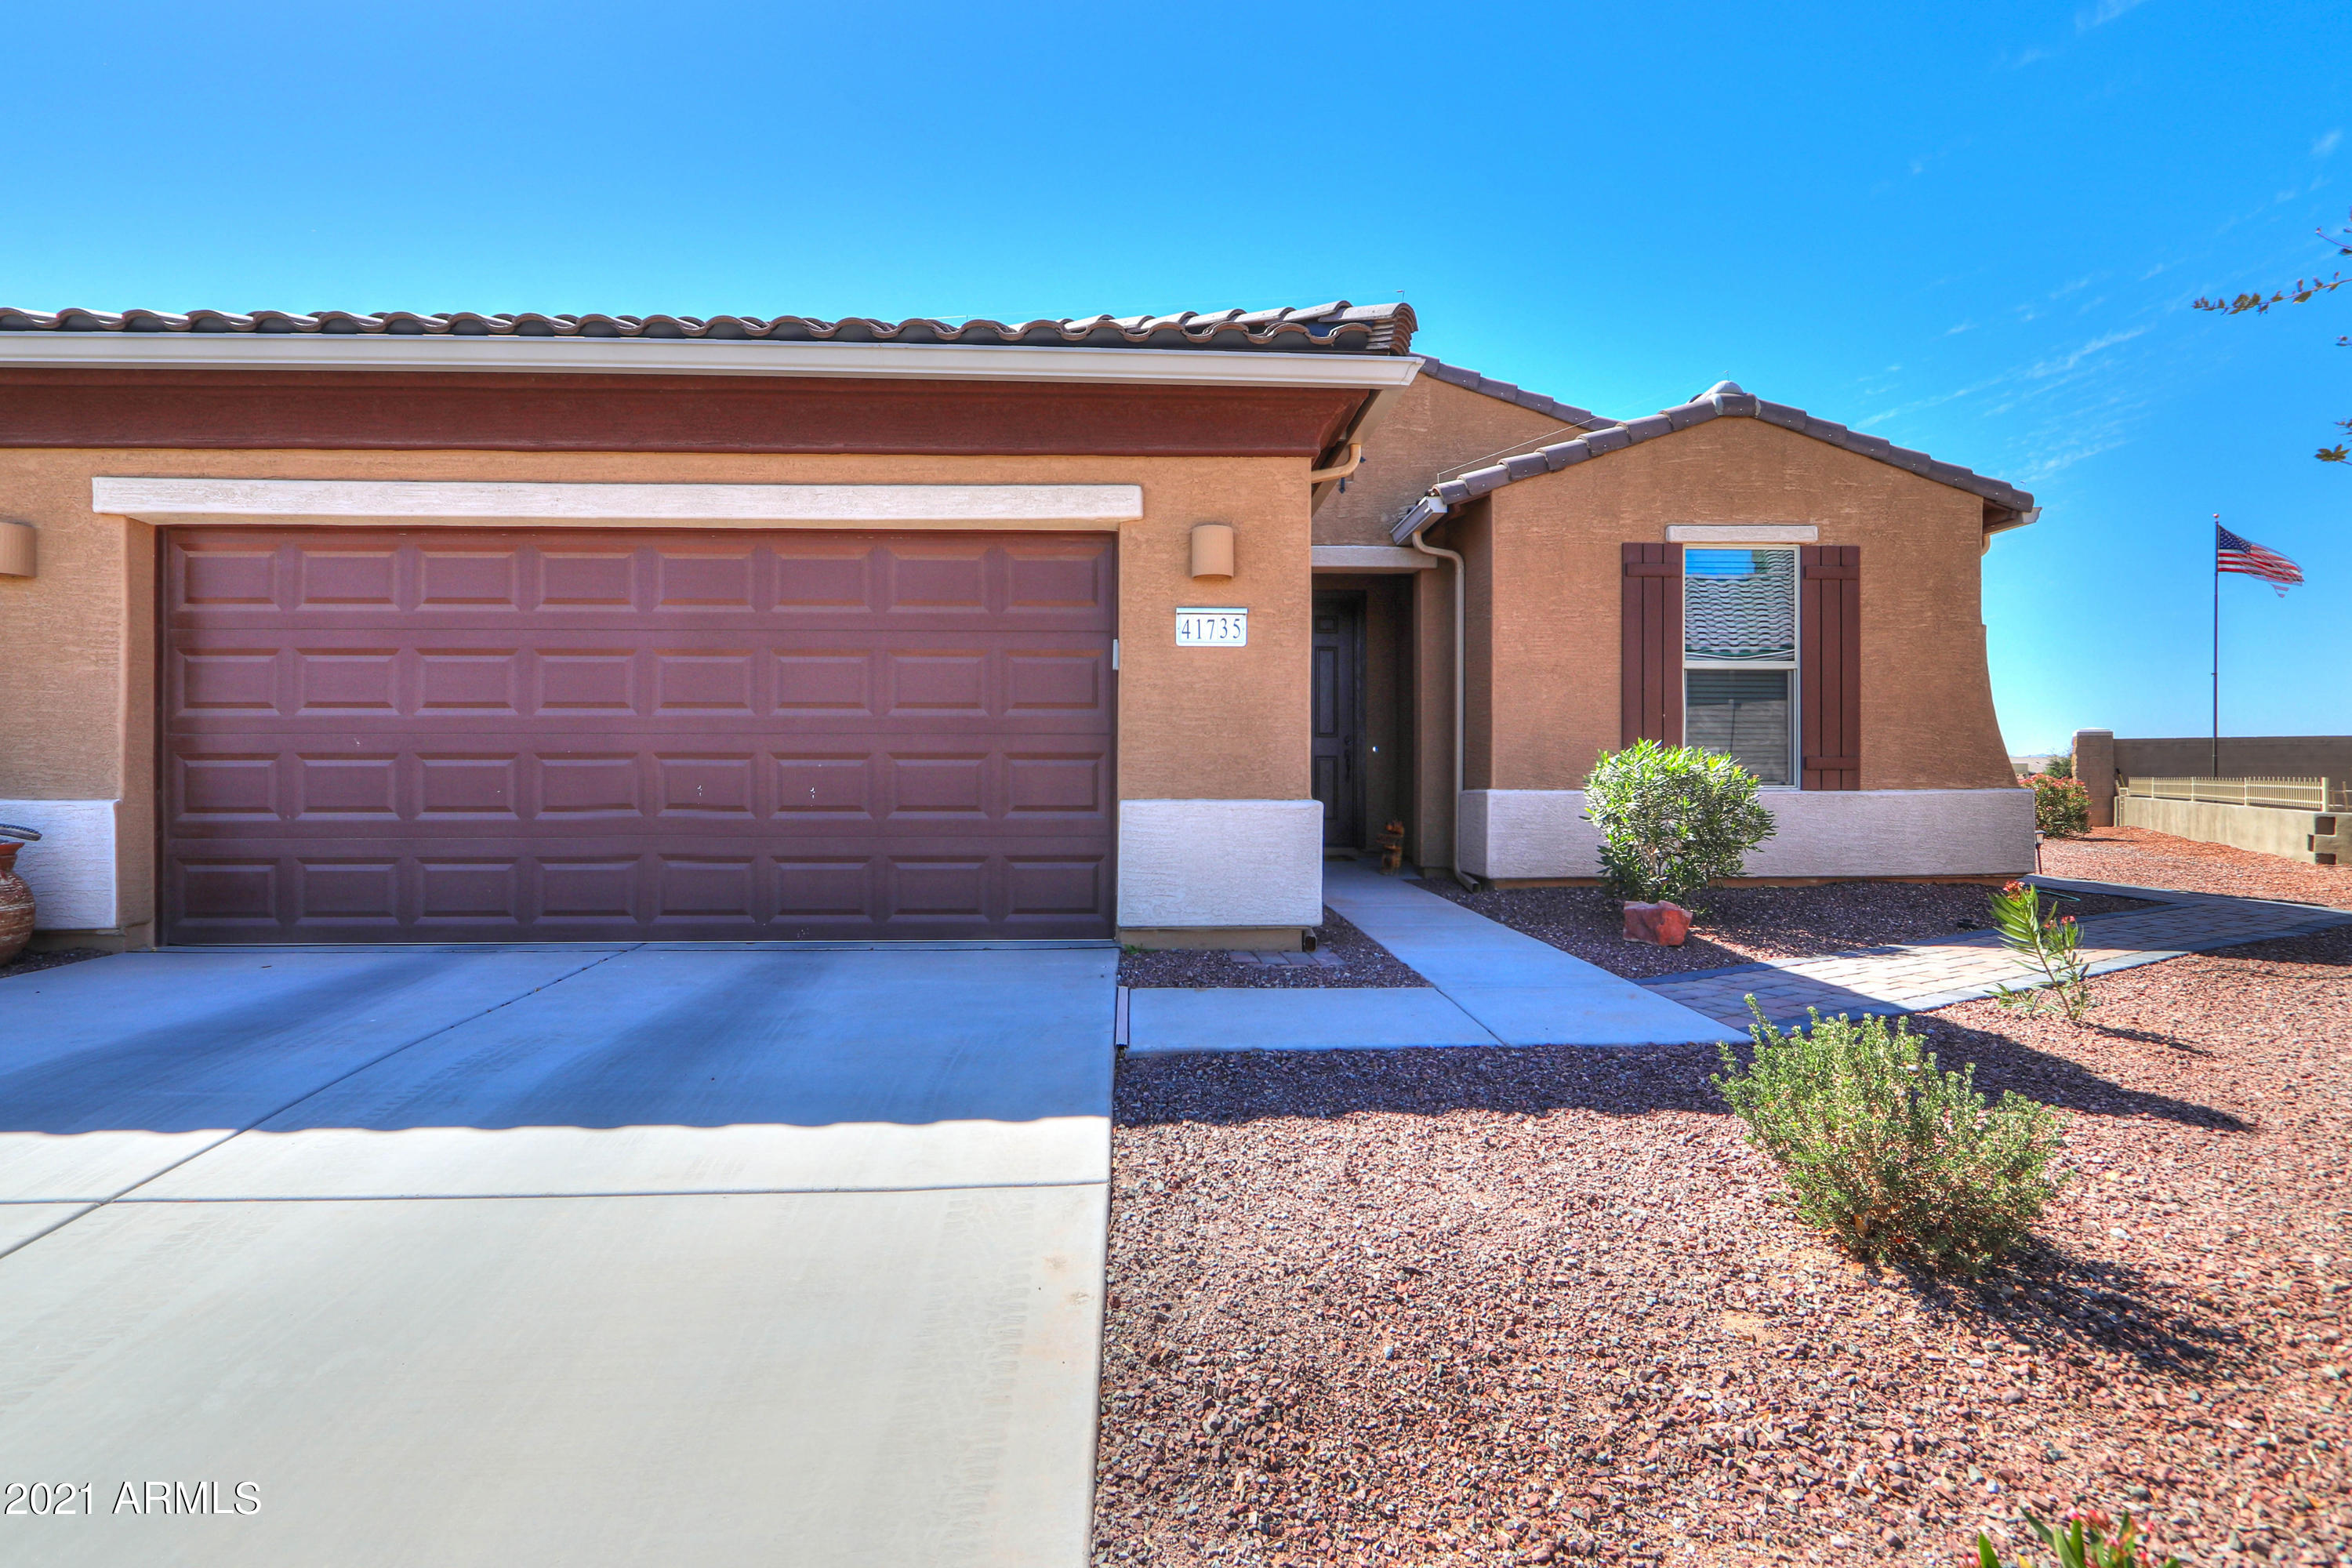 41735 W SUMMER WIND Way, Maricopa AZ 85138